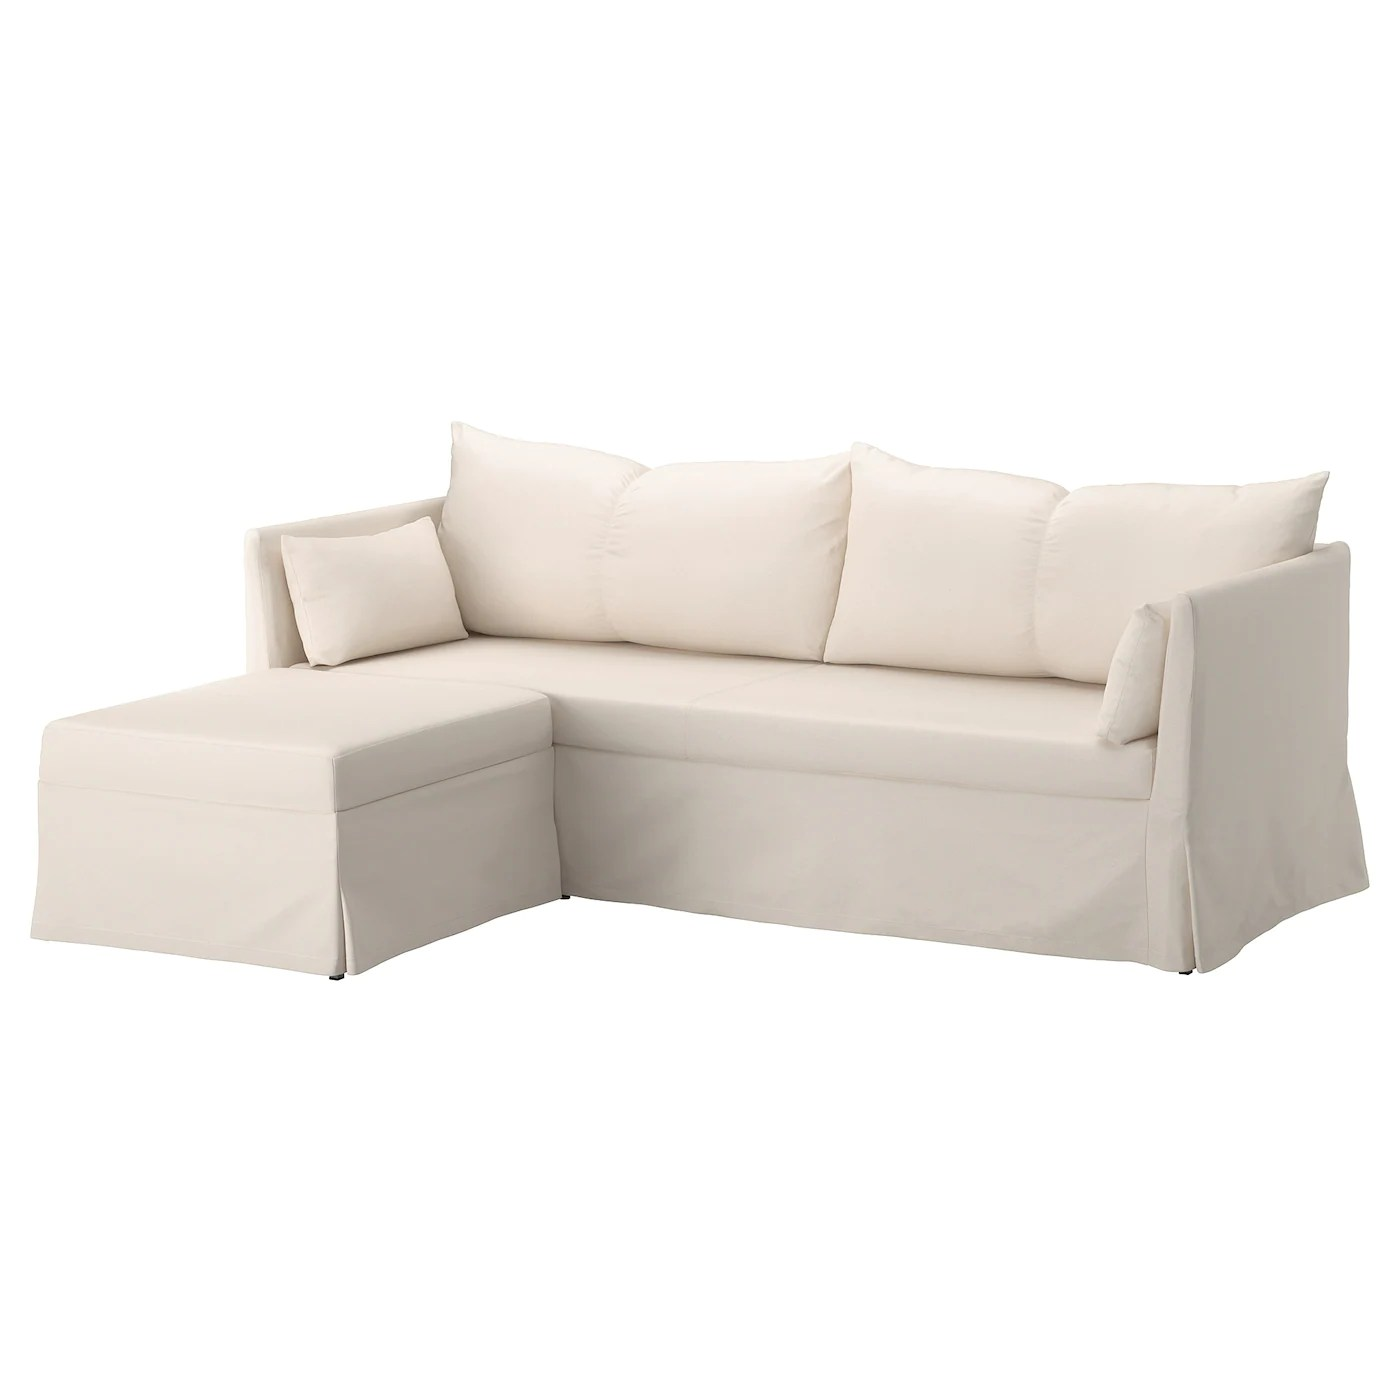 cheap fabric corner sofa beds uk cover in pune sofas ikea sandbacken 3 seat